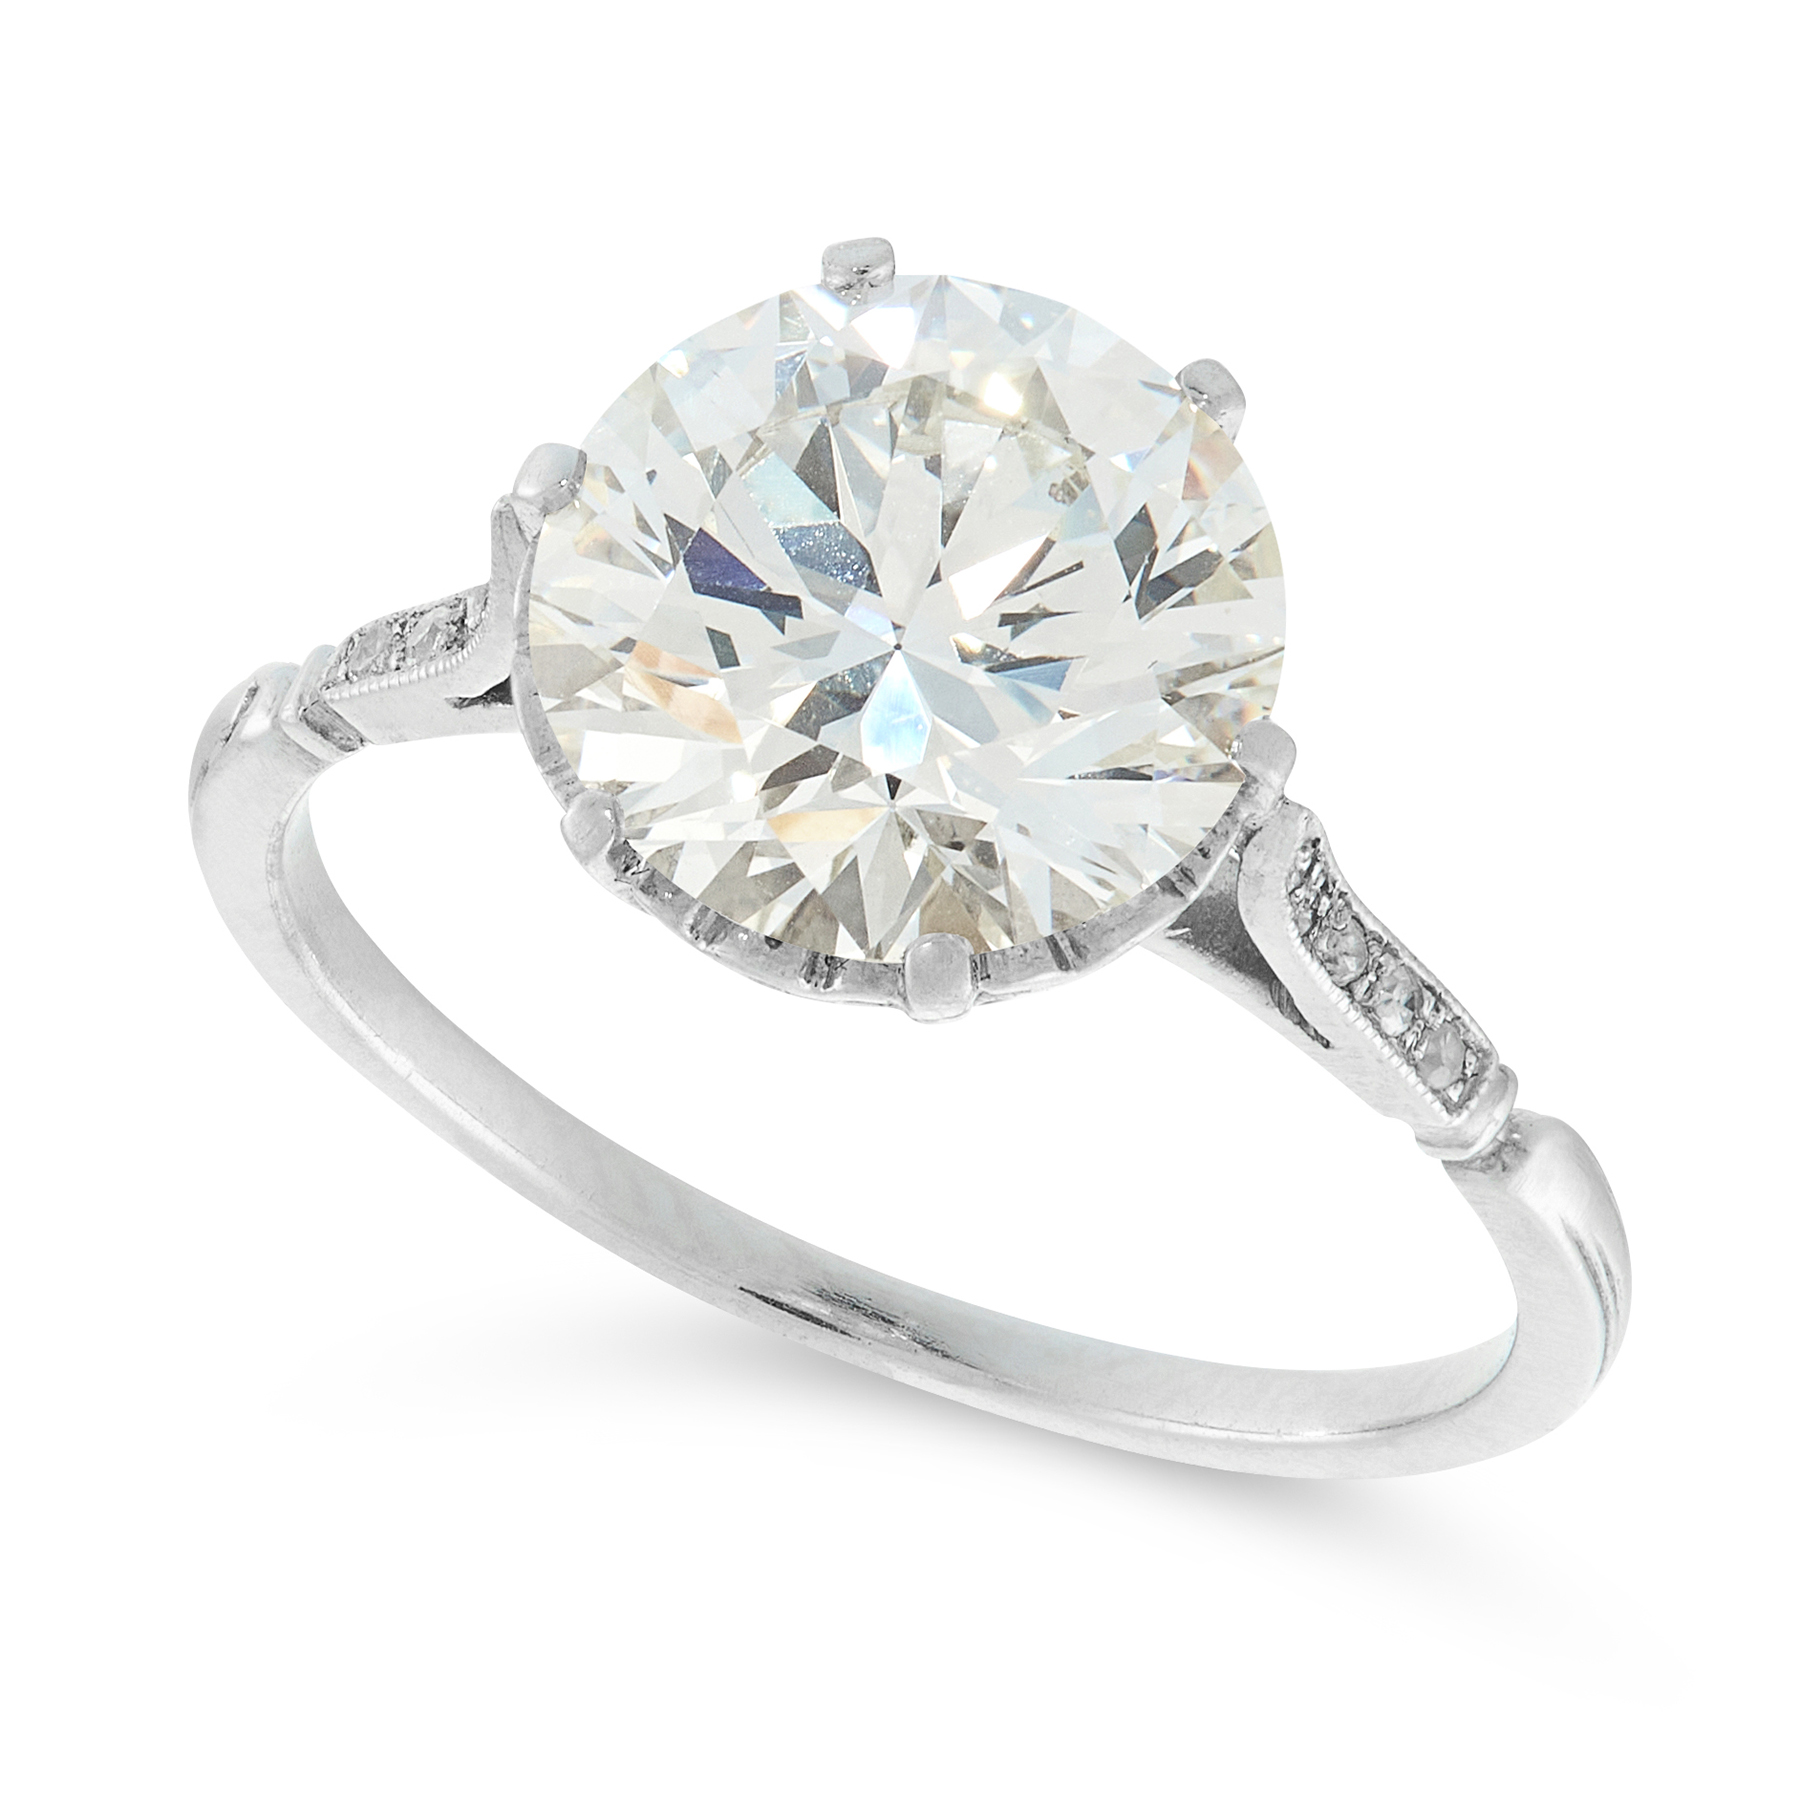 A SOLITAIRE DIAMOND RING set with a transitional cut diamond of 2.78 carats, between tapering